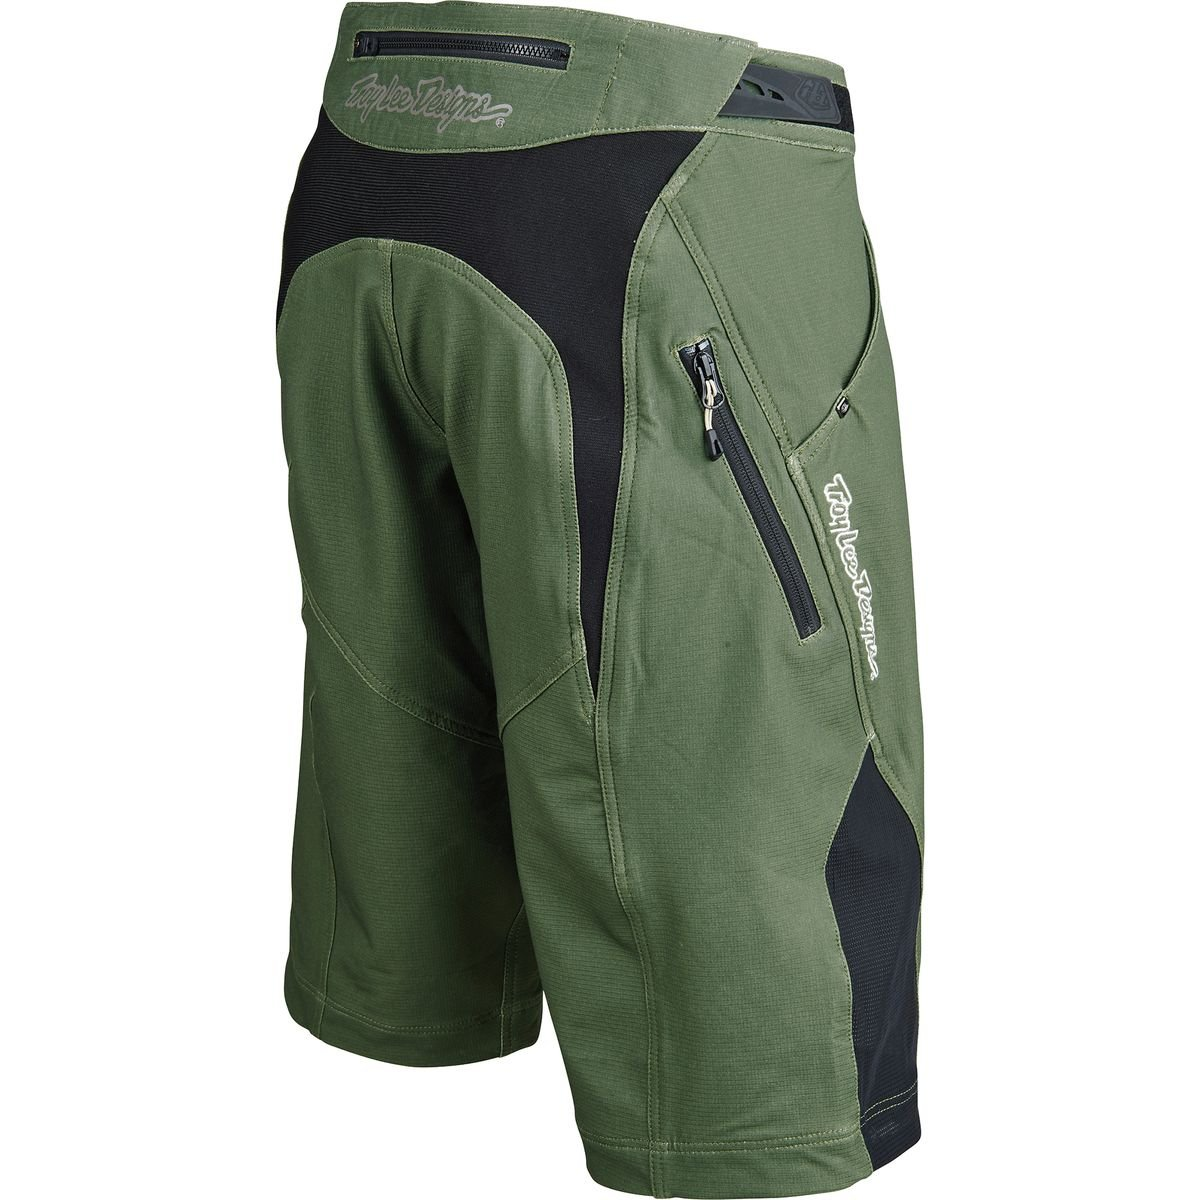 Troy Lee Designs Ruckus Short Army Green 30 Sports Golf Wiring Schematicit Shortsi Put The Positive Battery Cable On Outdoors